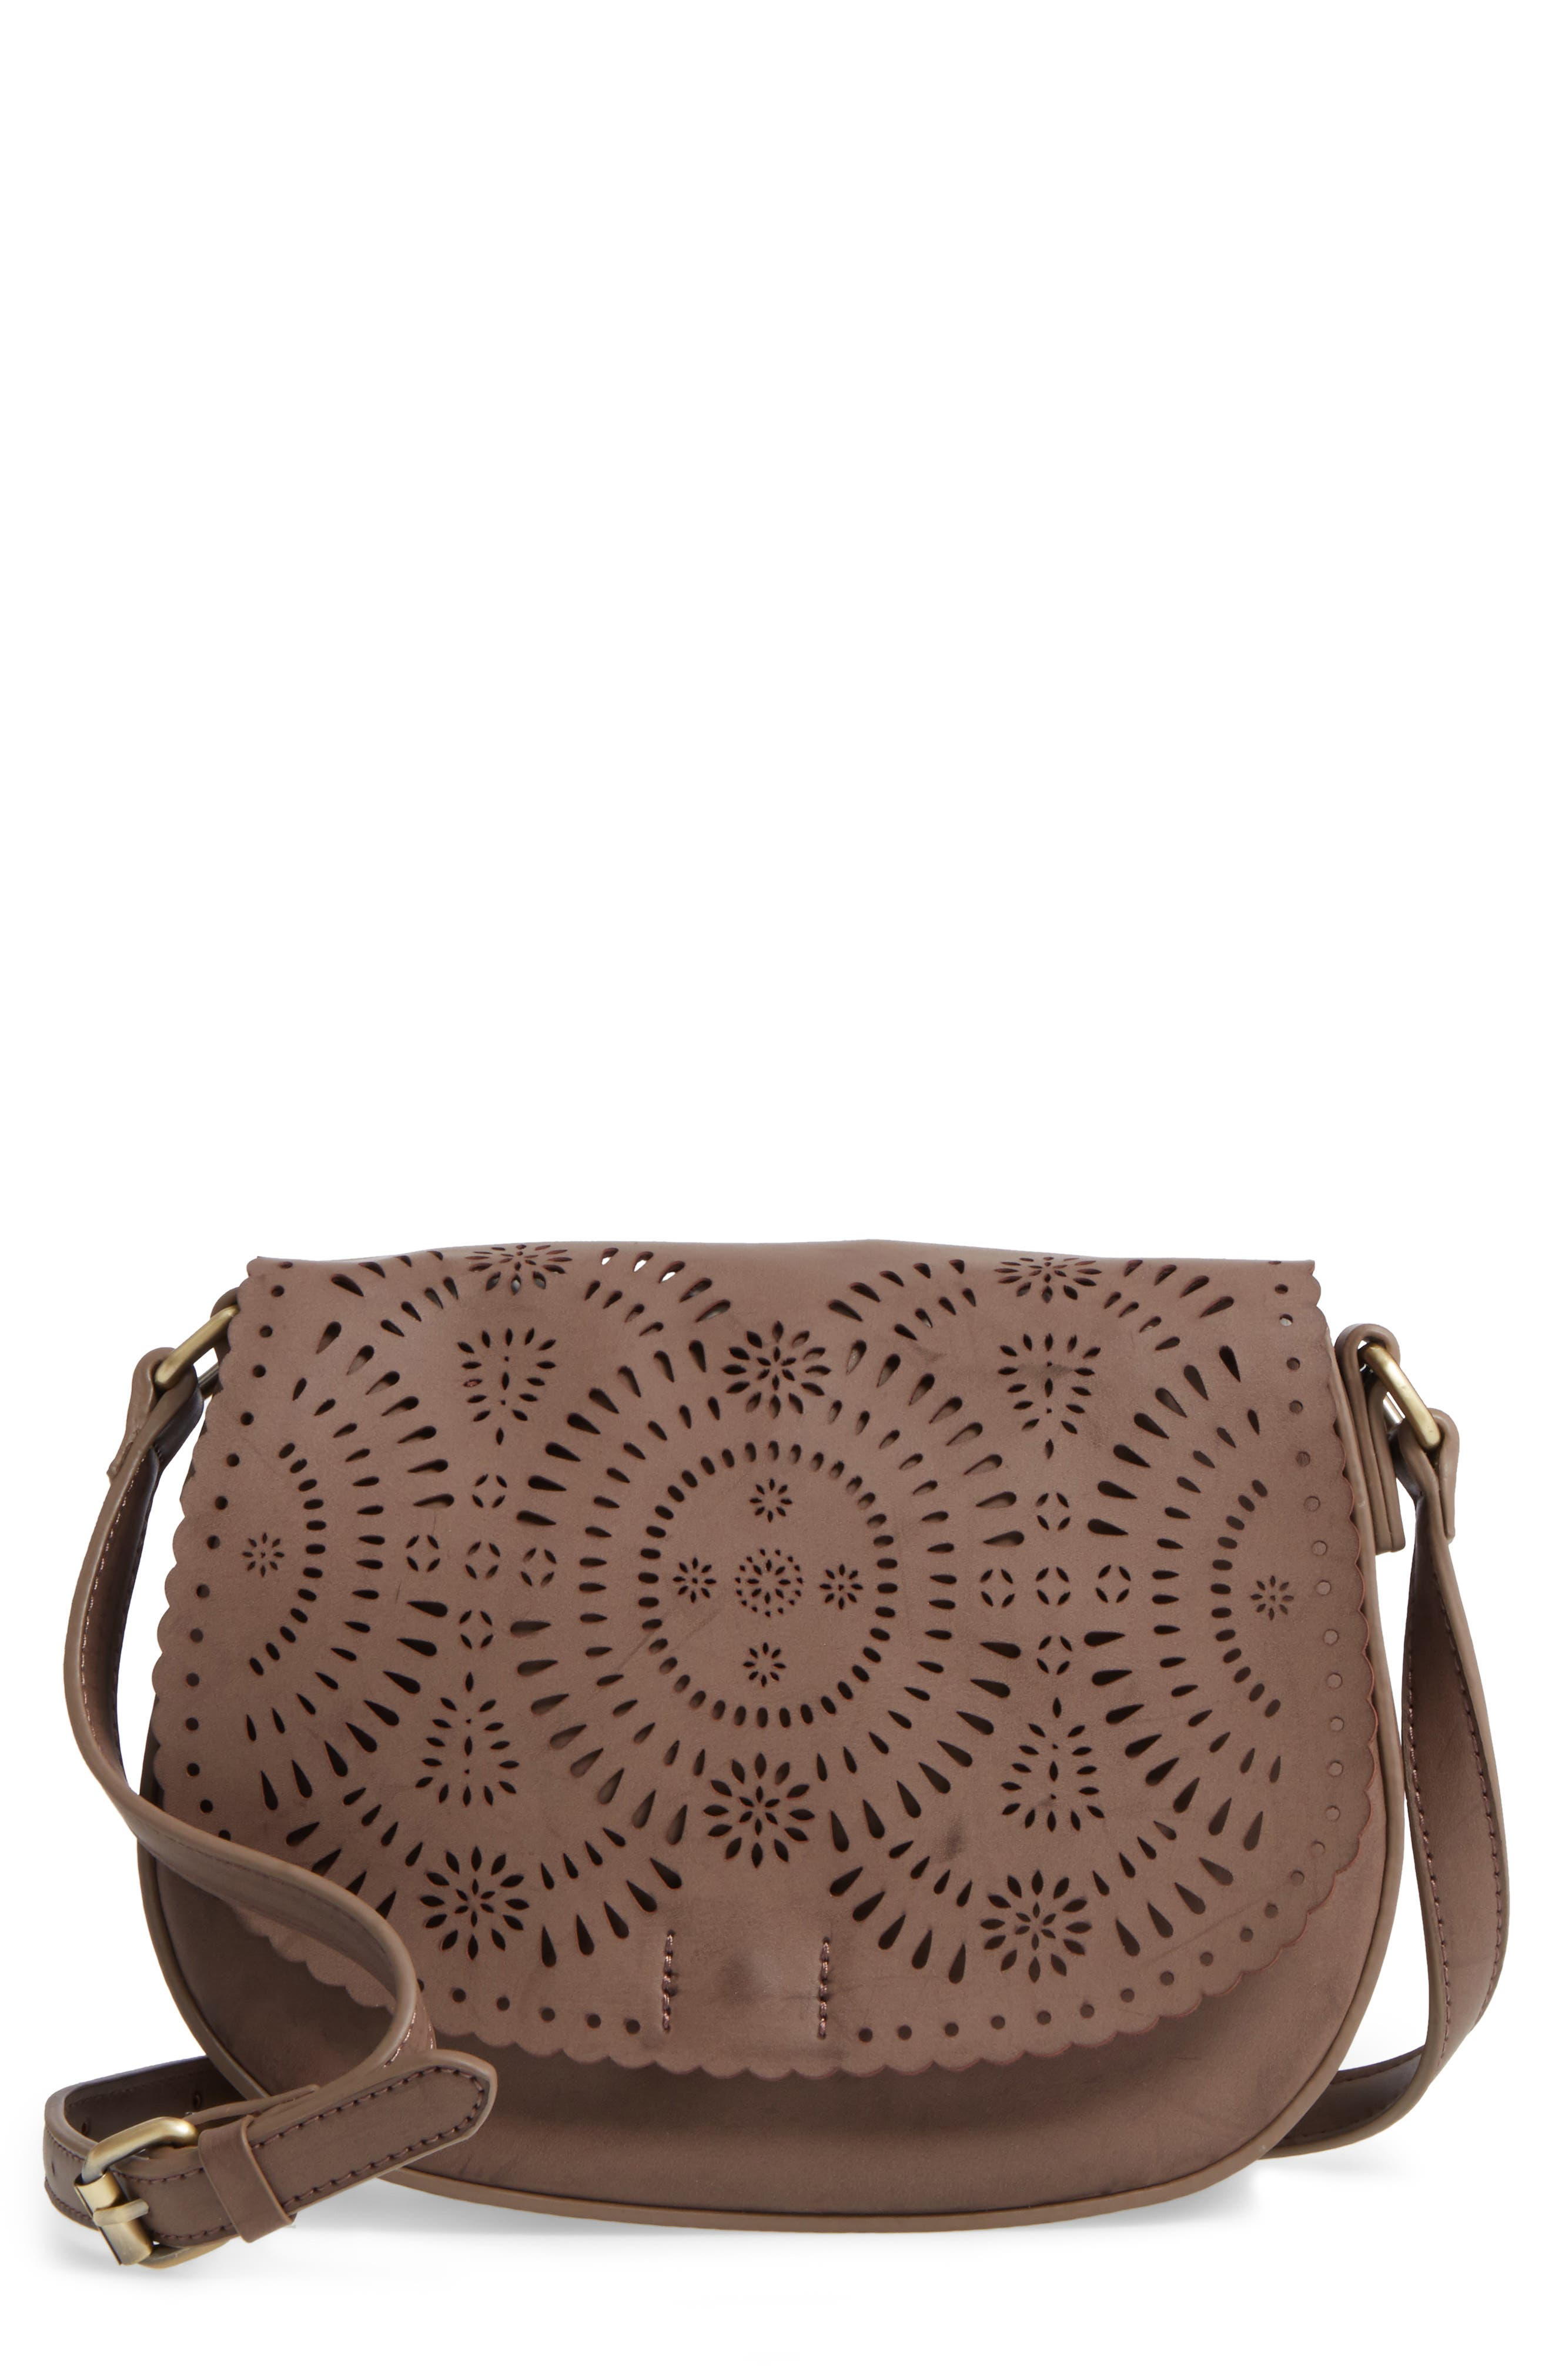 Alternate Image 1 Selected - Shiraleah Dakota Faux Leather Saddle Bag